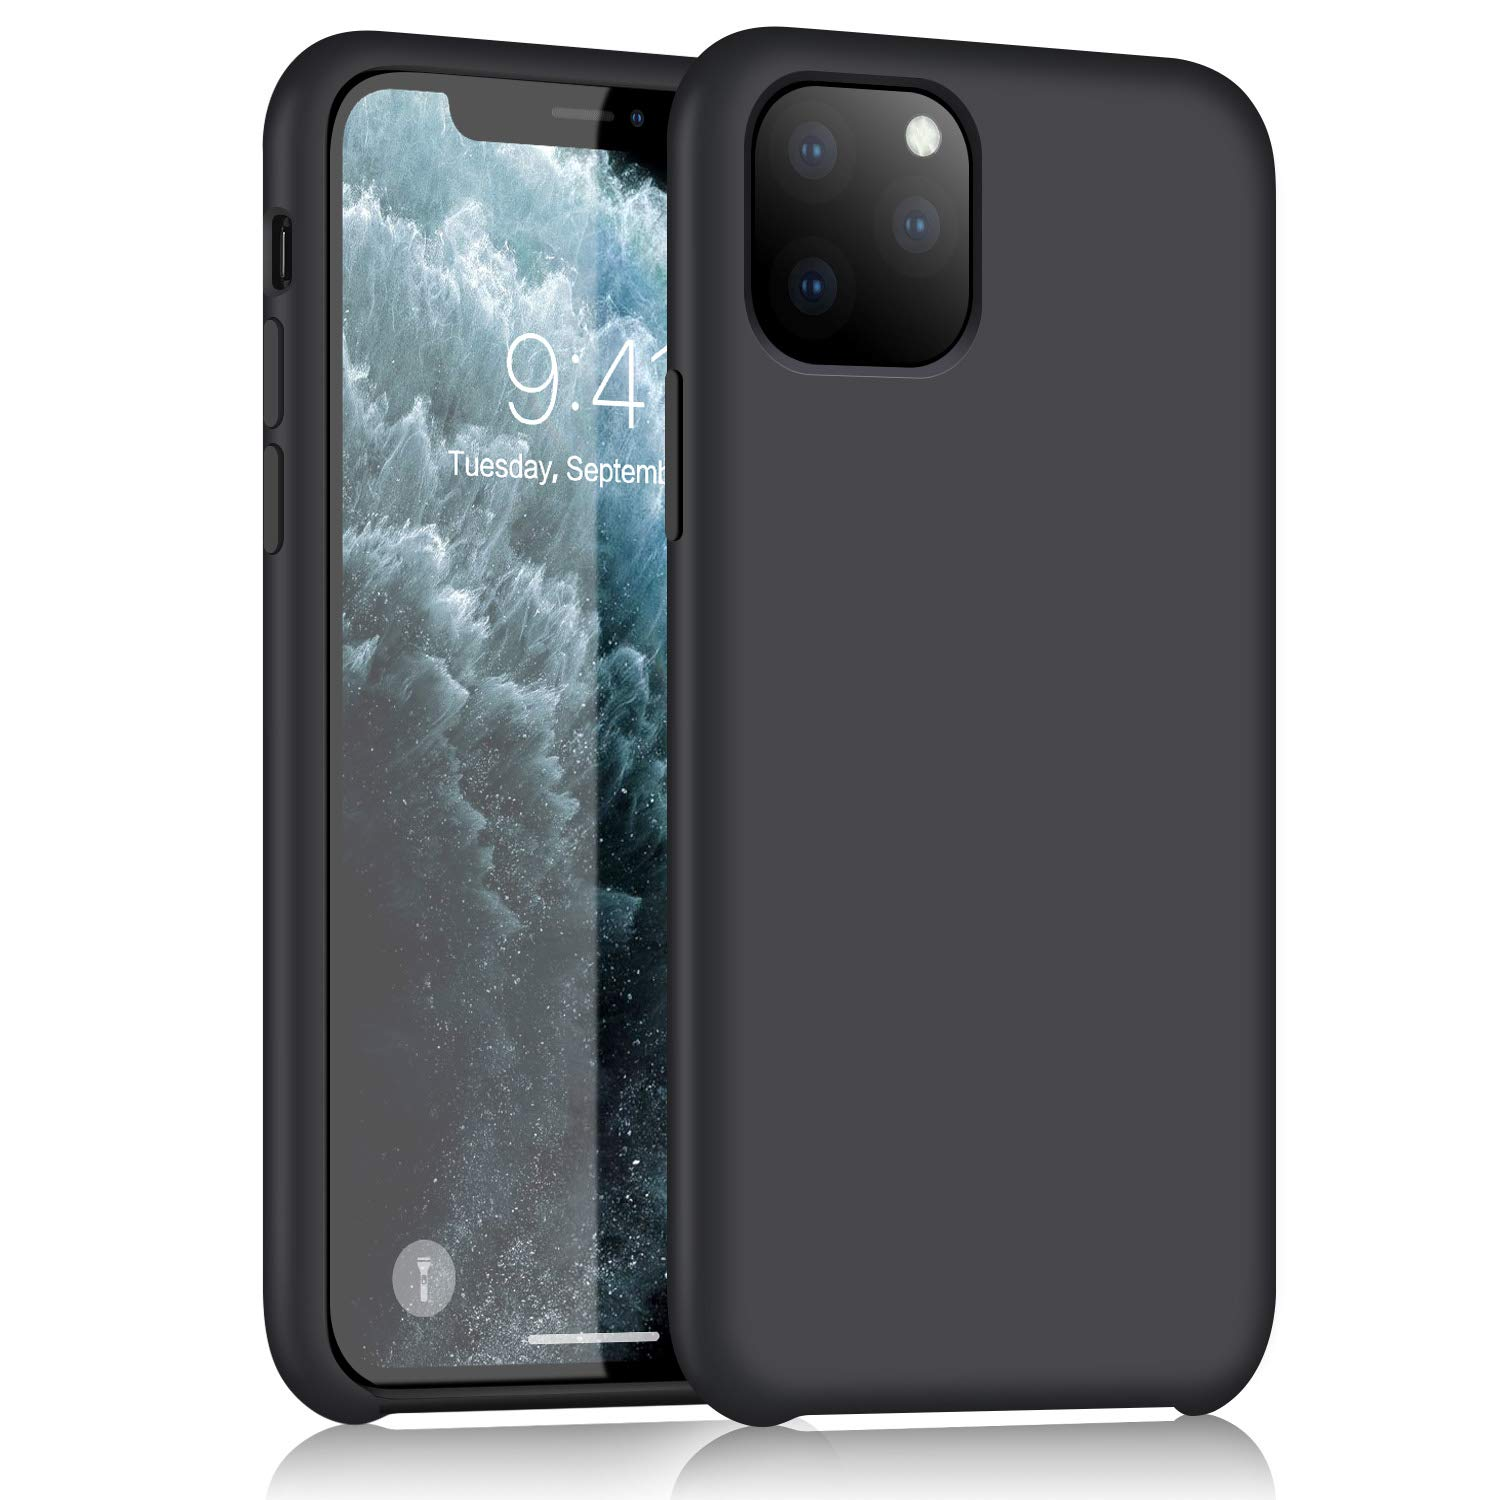 XSHNUO iPhone 11 Pro Silicone Case, Liquid Silicone Gel Rubber Ultra Thin Case with Soft Microfiber Cloth Lining Cushion for iPhone 11 Pro (2019) 5.8 inch (Black)